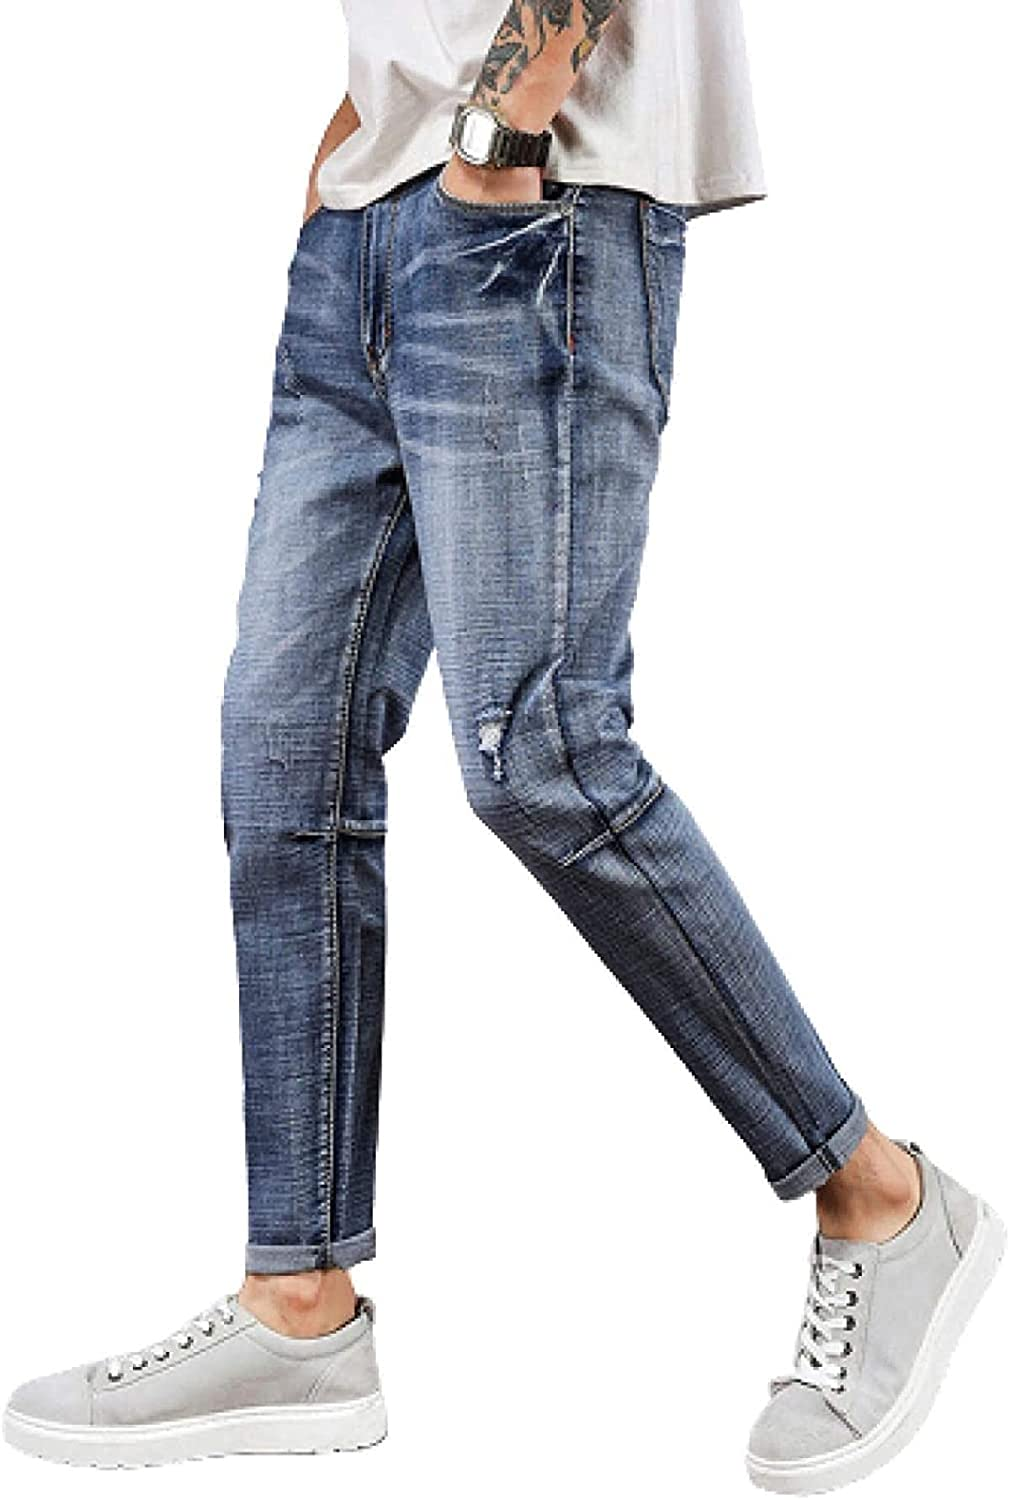 ZYUEER safety Men's Ripped Denim Jeans Free shipping Stretch Comfortable Wea Fit Slim